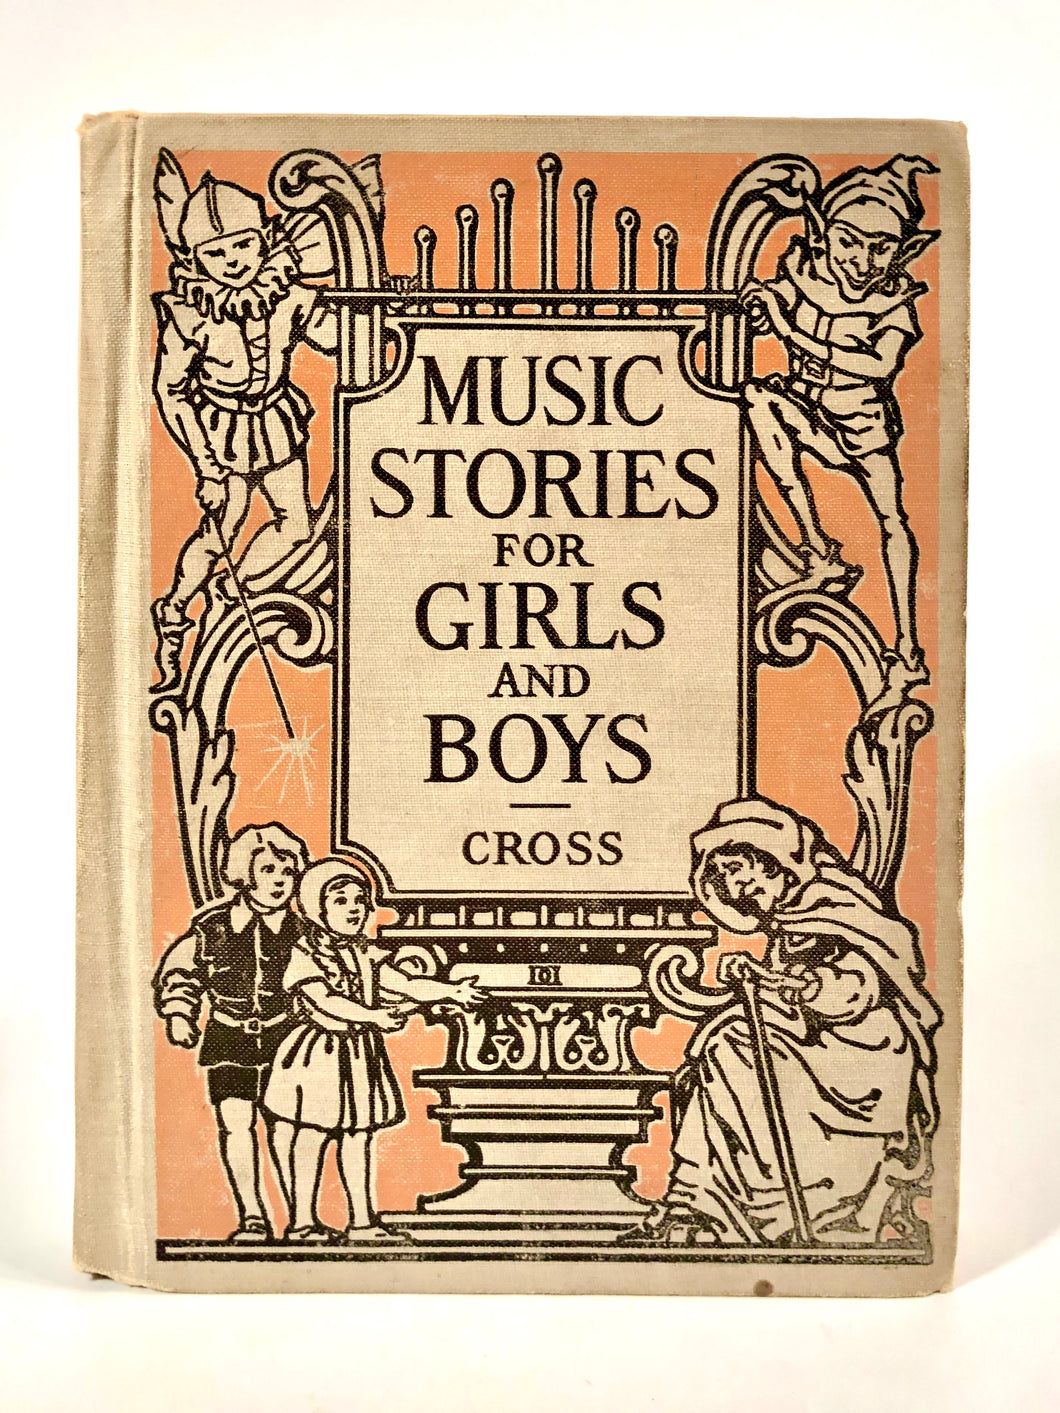 1926 MUSIC STORIES FOR GIRLS AND BOYS Kid's Book || Eugenie M. Wireman